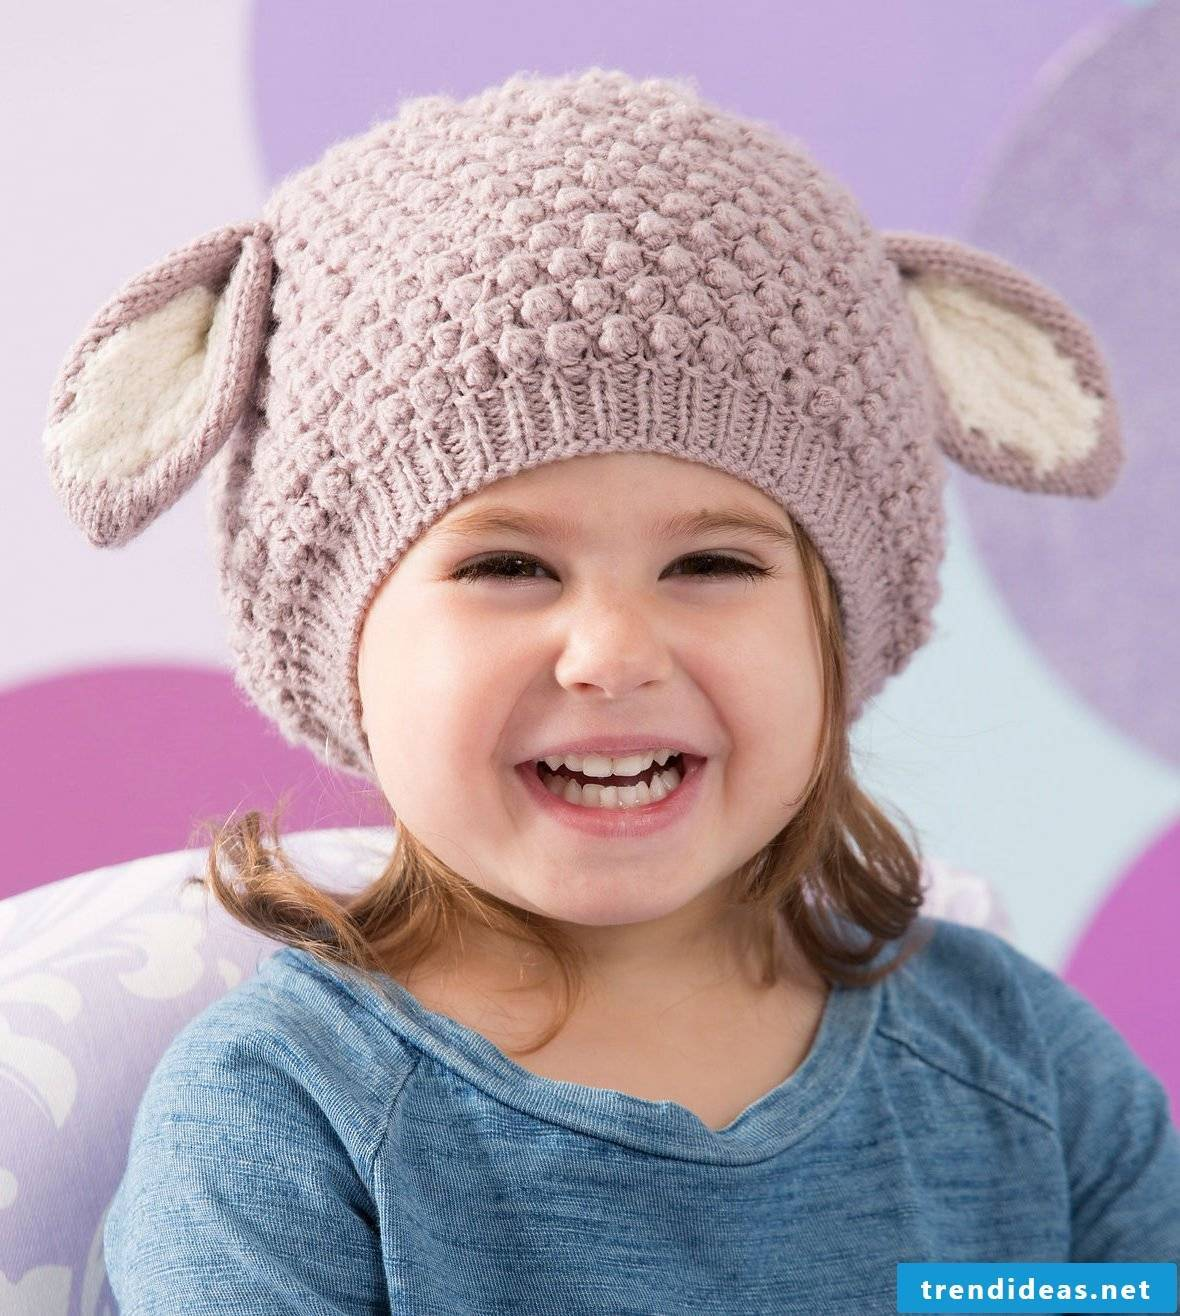 make your child happy and conjure a knit cap for him